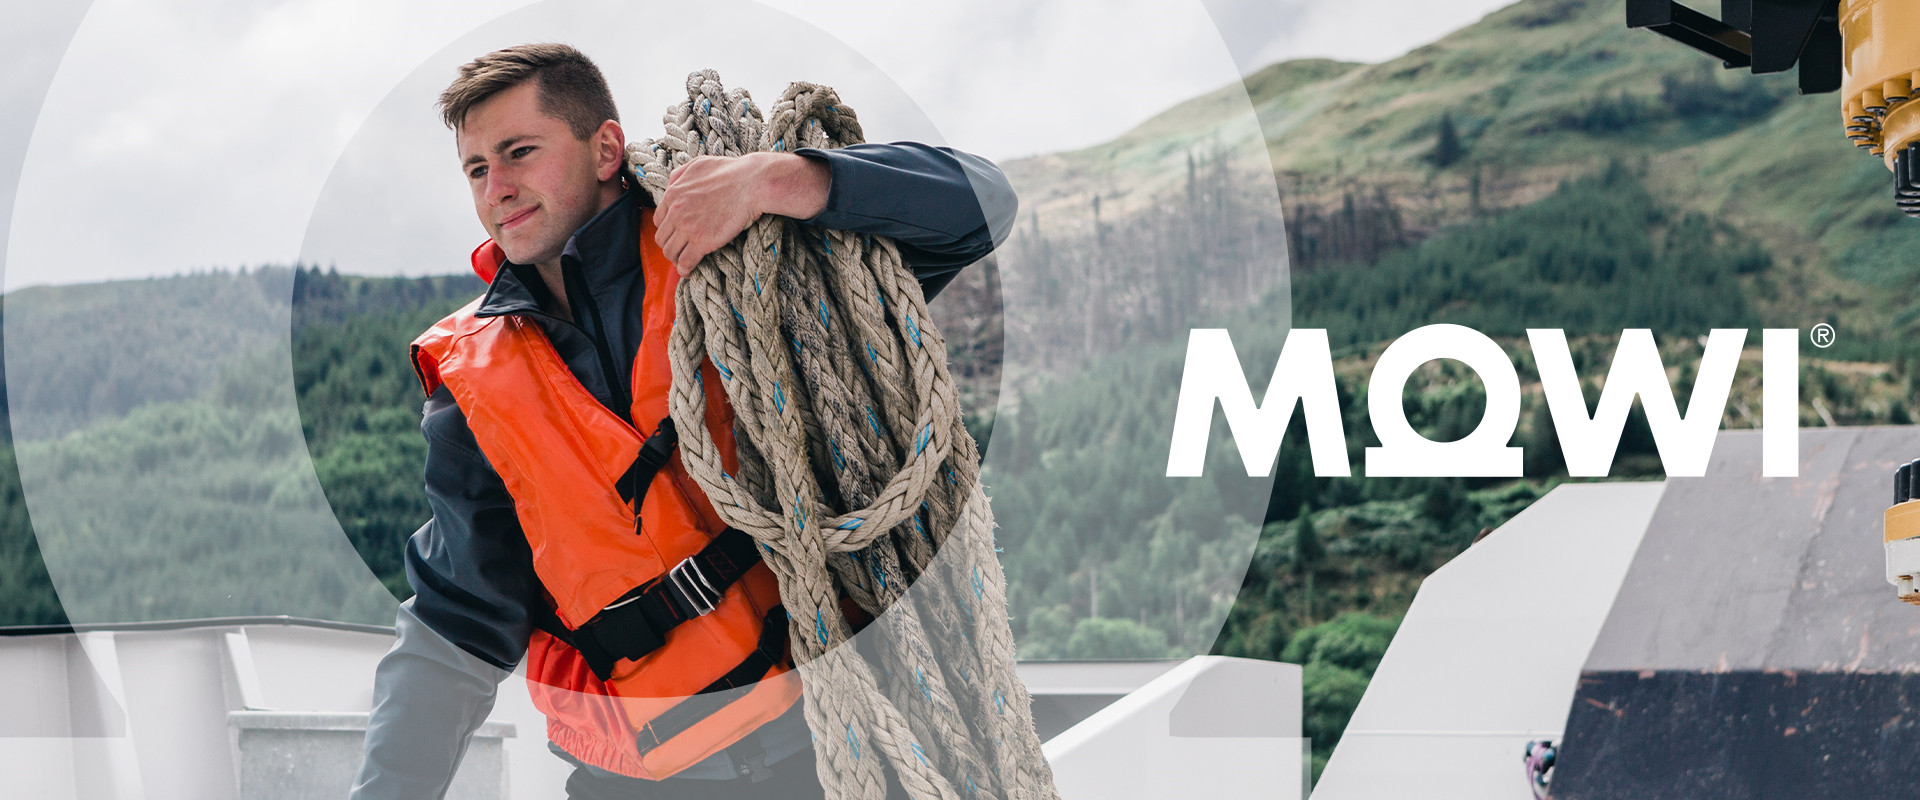 A man wearing a Mowi lifejacket on a boat, hauling some rope on his shoulder and the Scottish Highlands behind